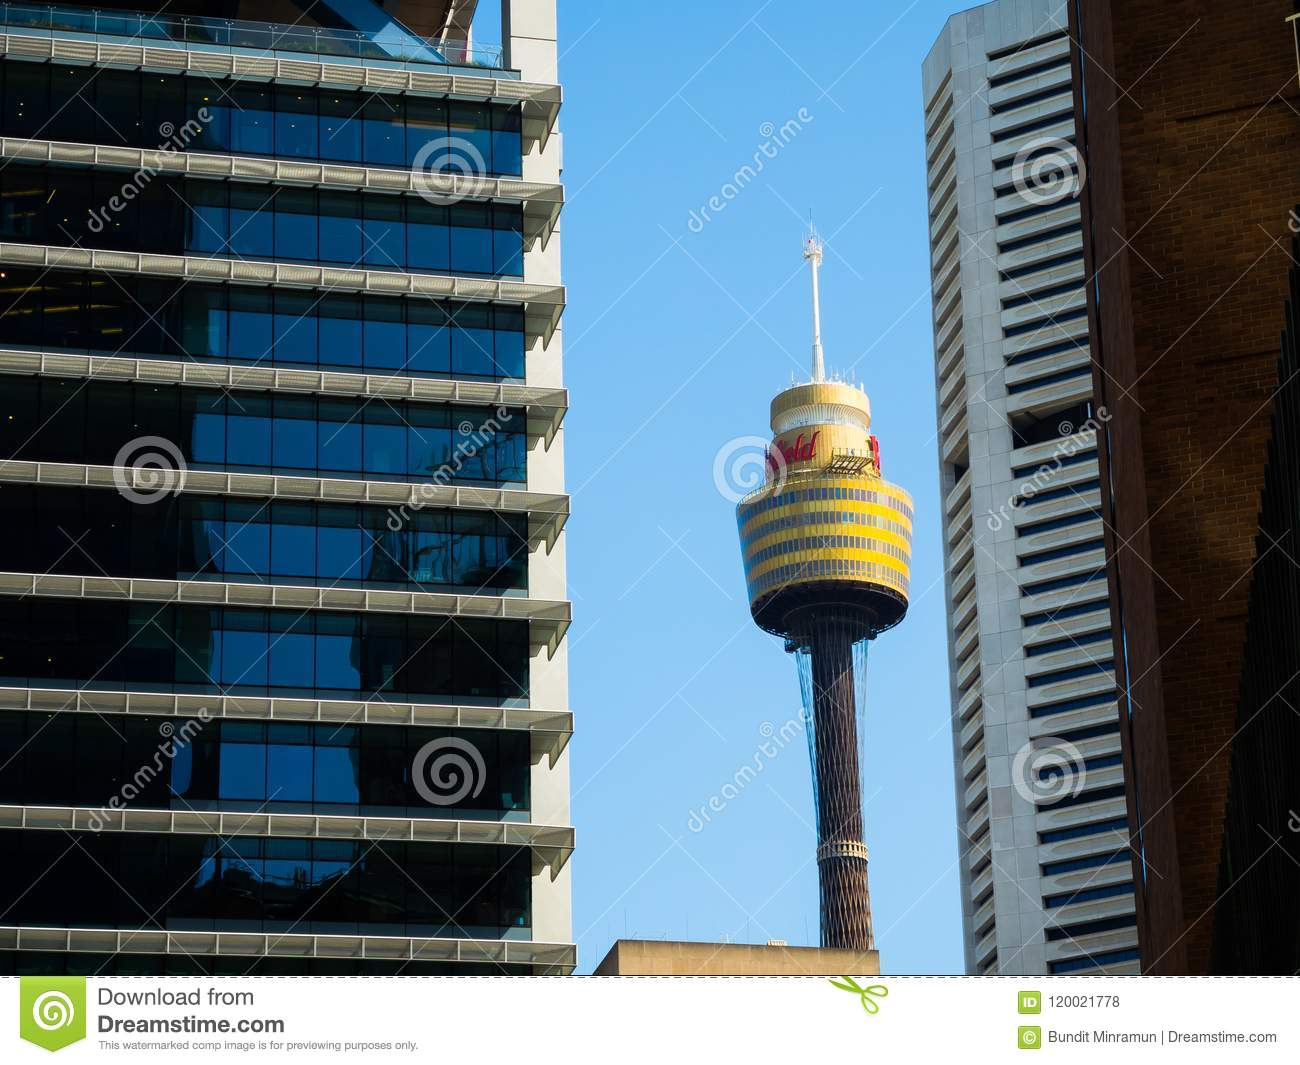 Sydney tower eye is the second tallest observation tower in the Southern Hemisphere.